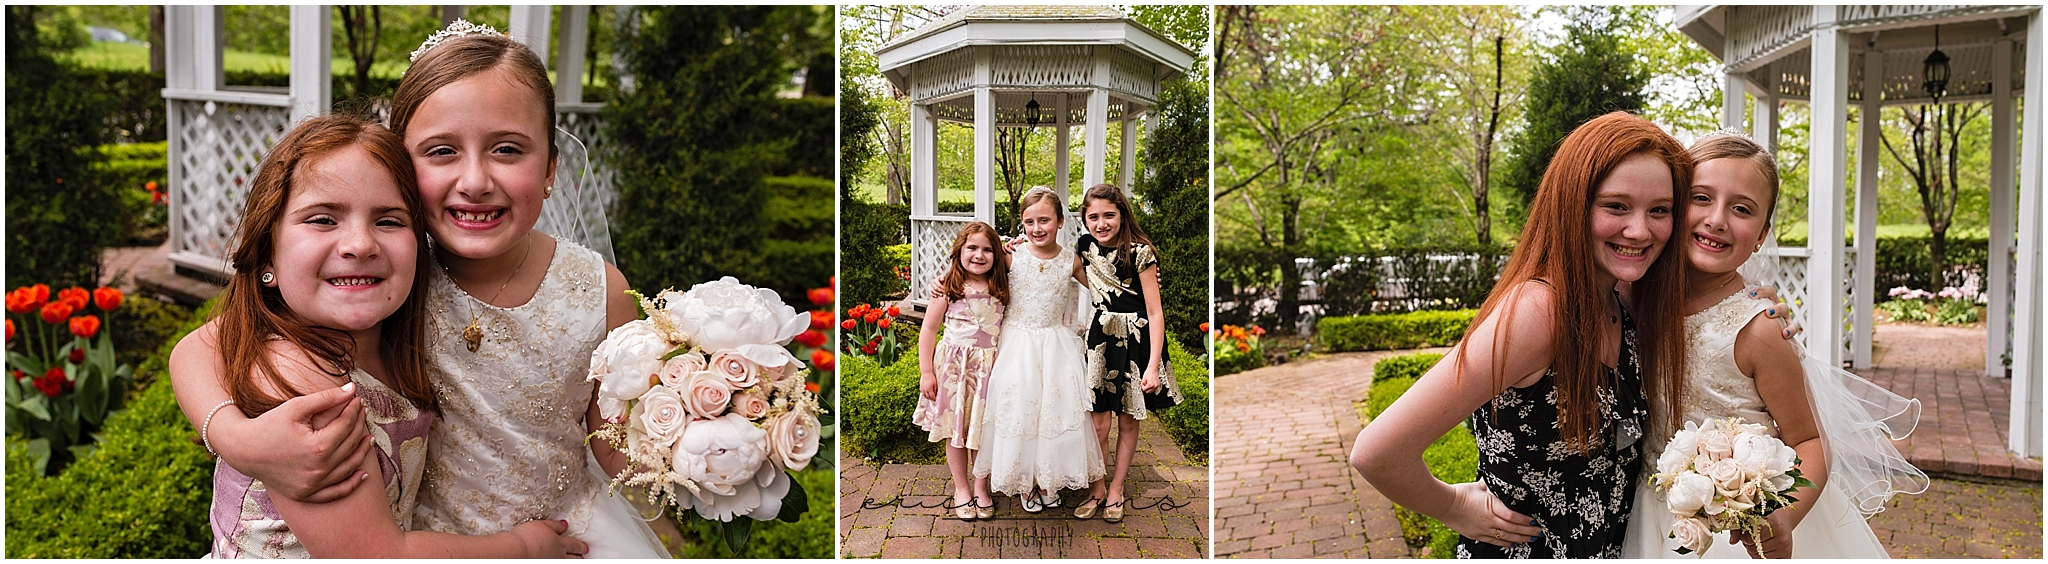 Erica Burns Photography | Long Island Photographer_0189.jpg